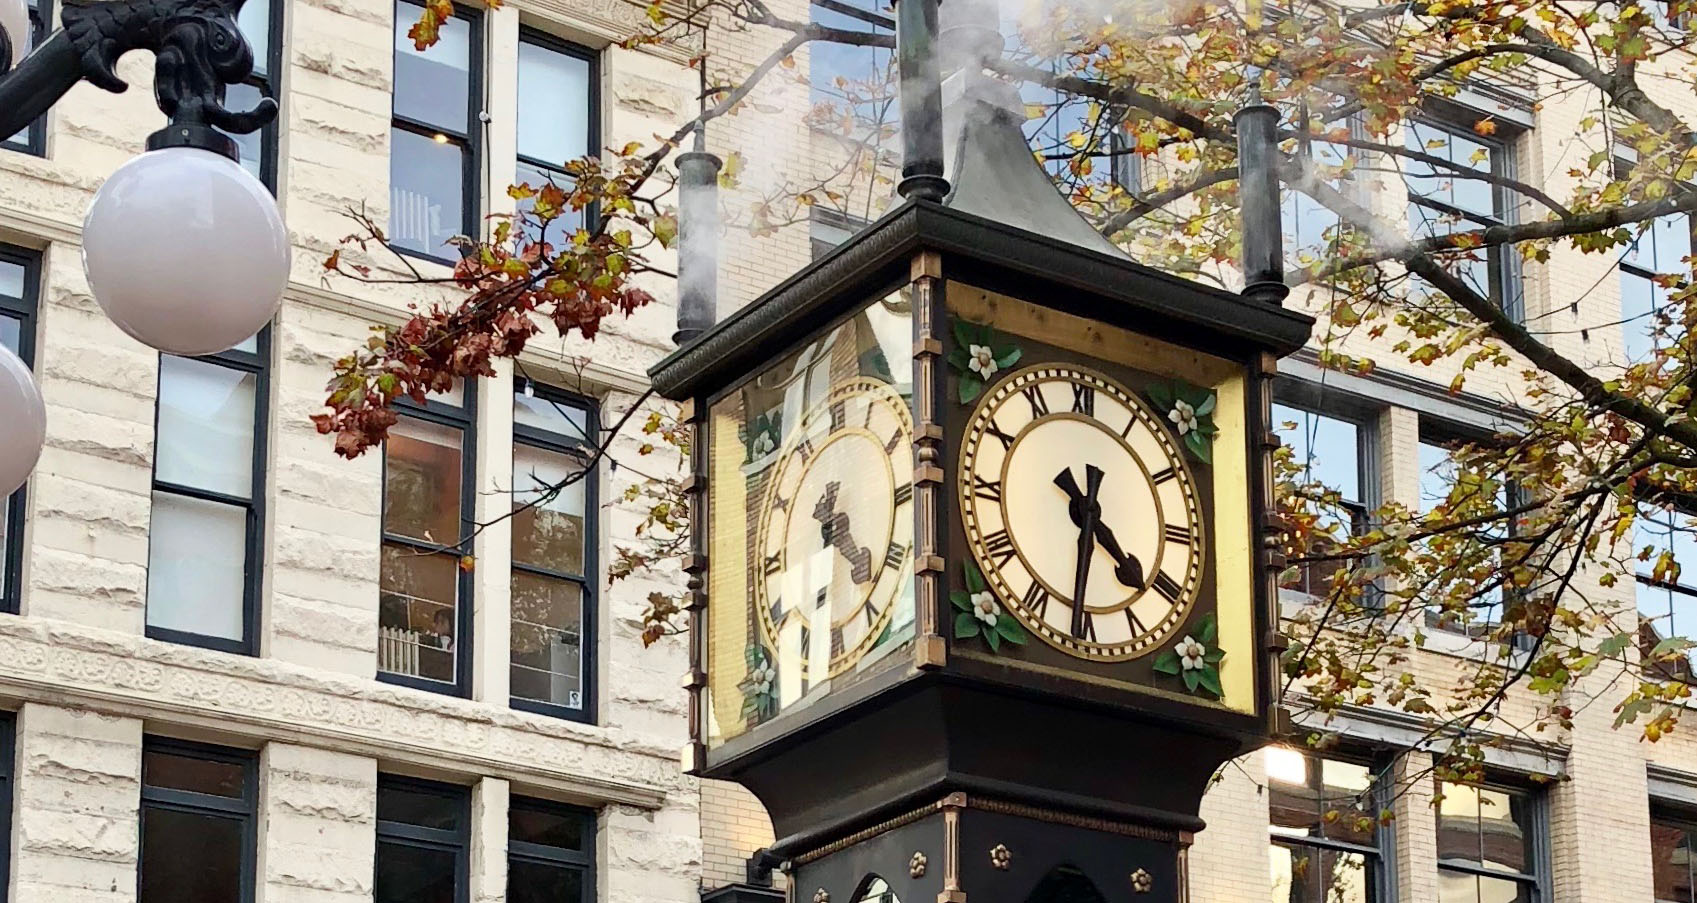 The steam clock in Gastown, Downtown Vancouver, Canada